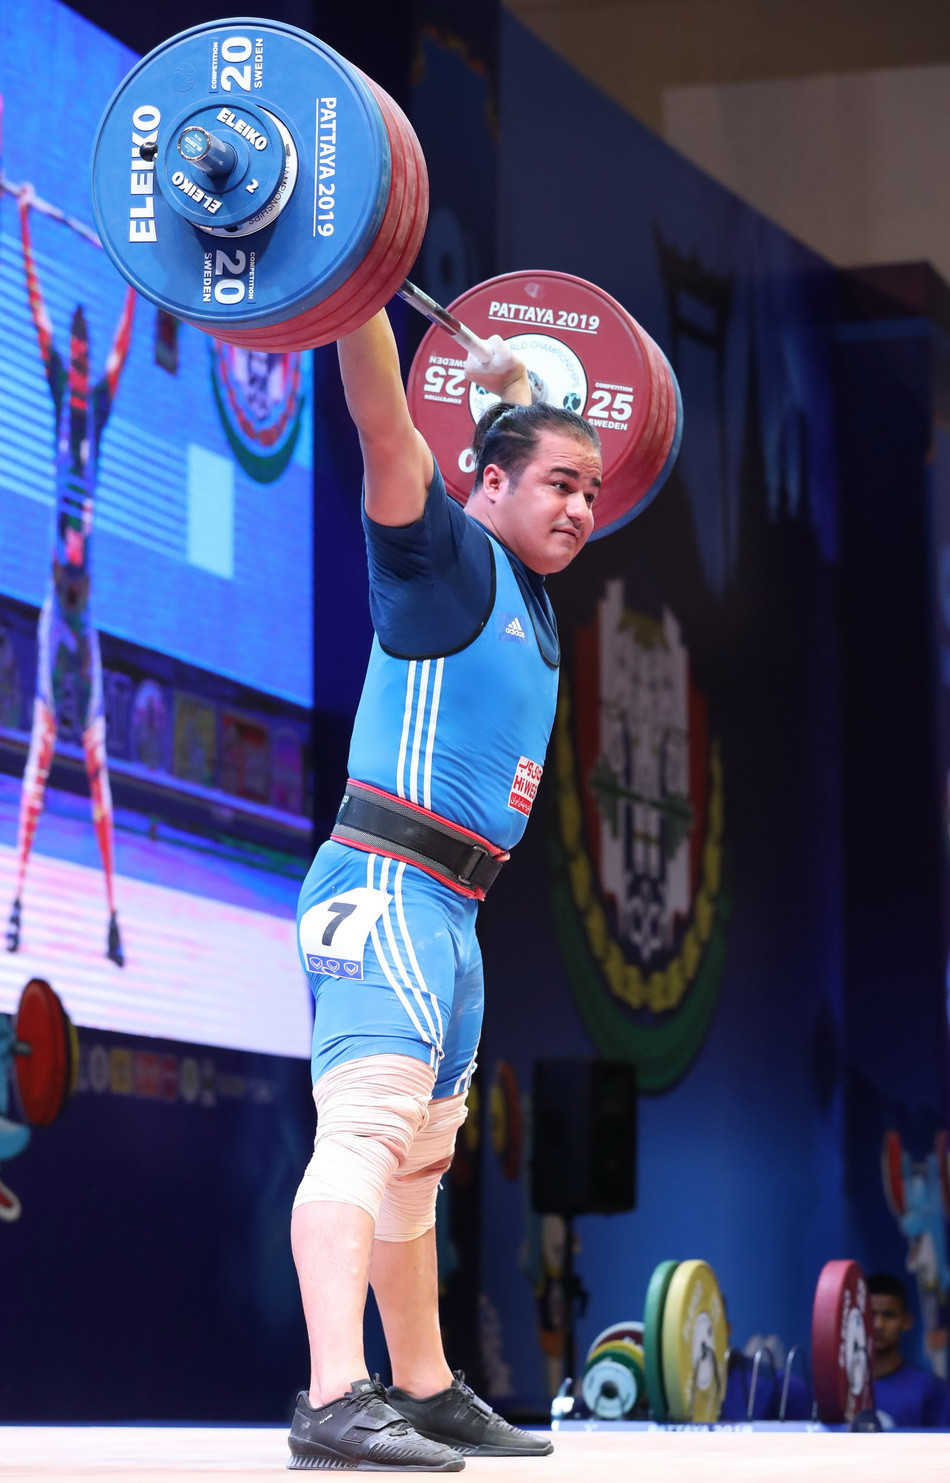 Rounding off the podium in the total was Iran's Reza Dehdar ©IWF